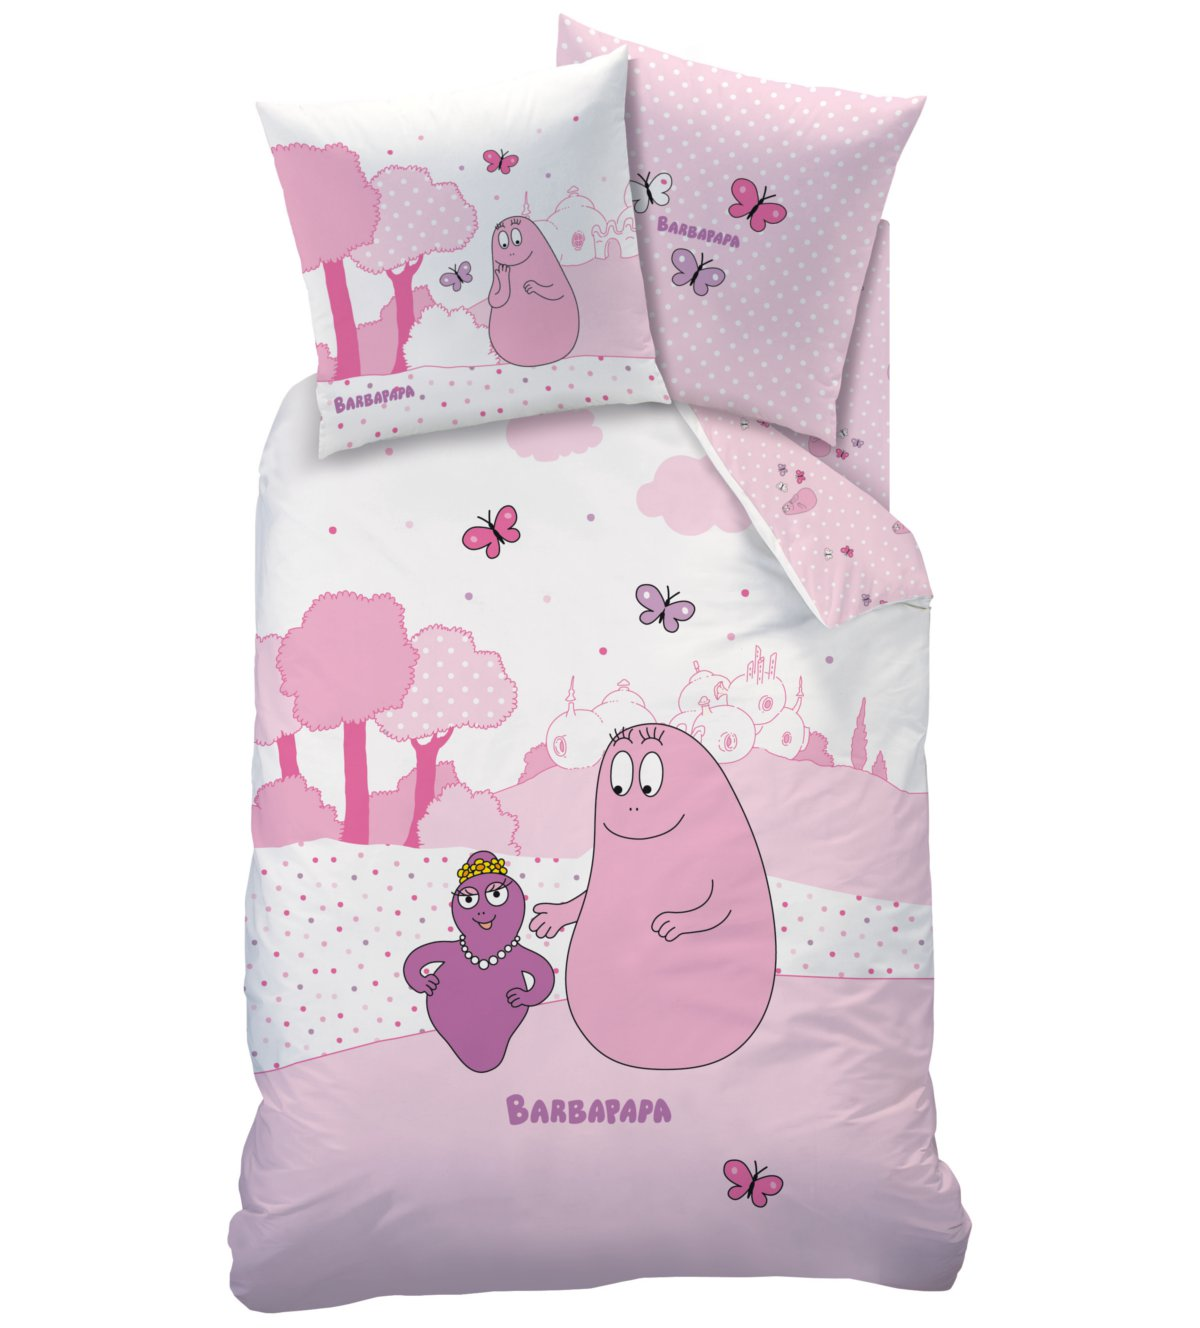 housse de couette barbapapa parure de lit 140 x 200 cm. Black Bedroom Furniture Sets. Home Design Ideas